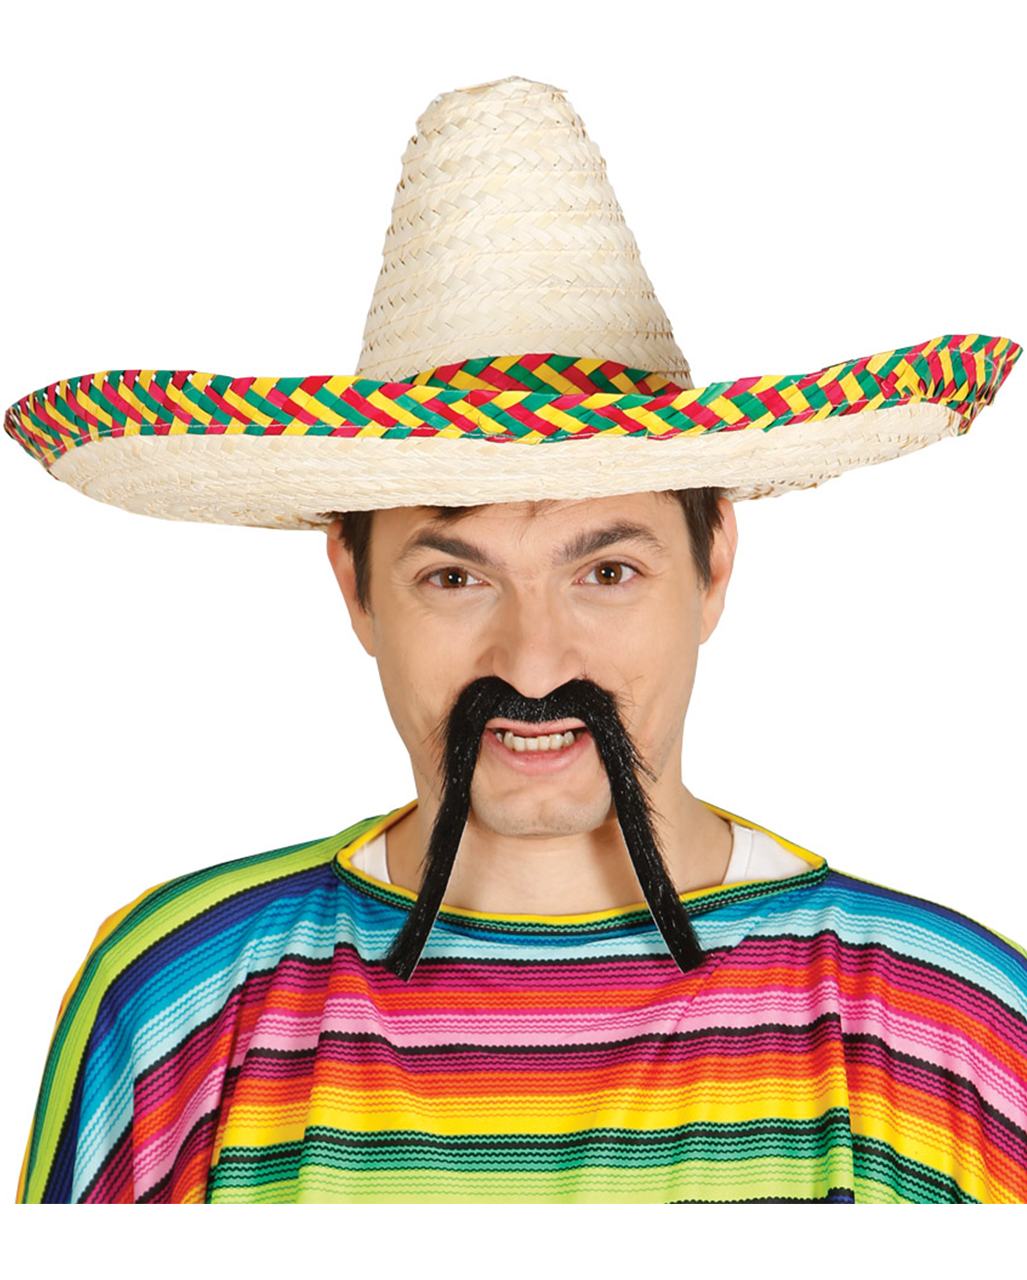 sombrero with colorful border mexican hat